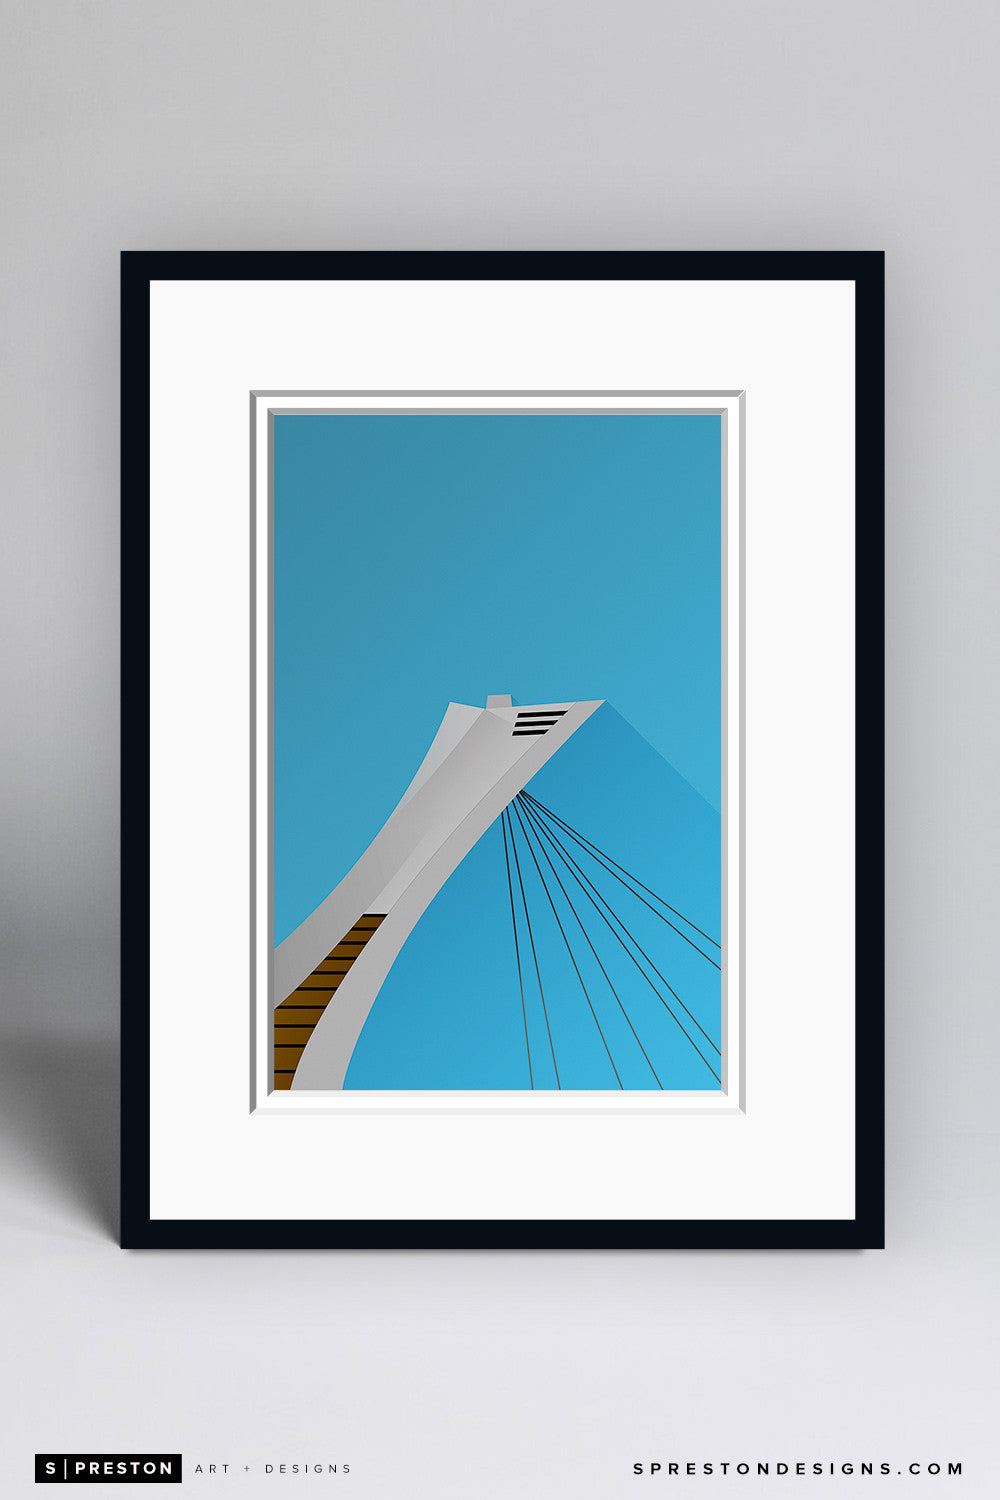 Minimalist Olympic Stadium Art Print - Montreal Expos - S. Preston Art + Designs